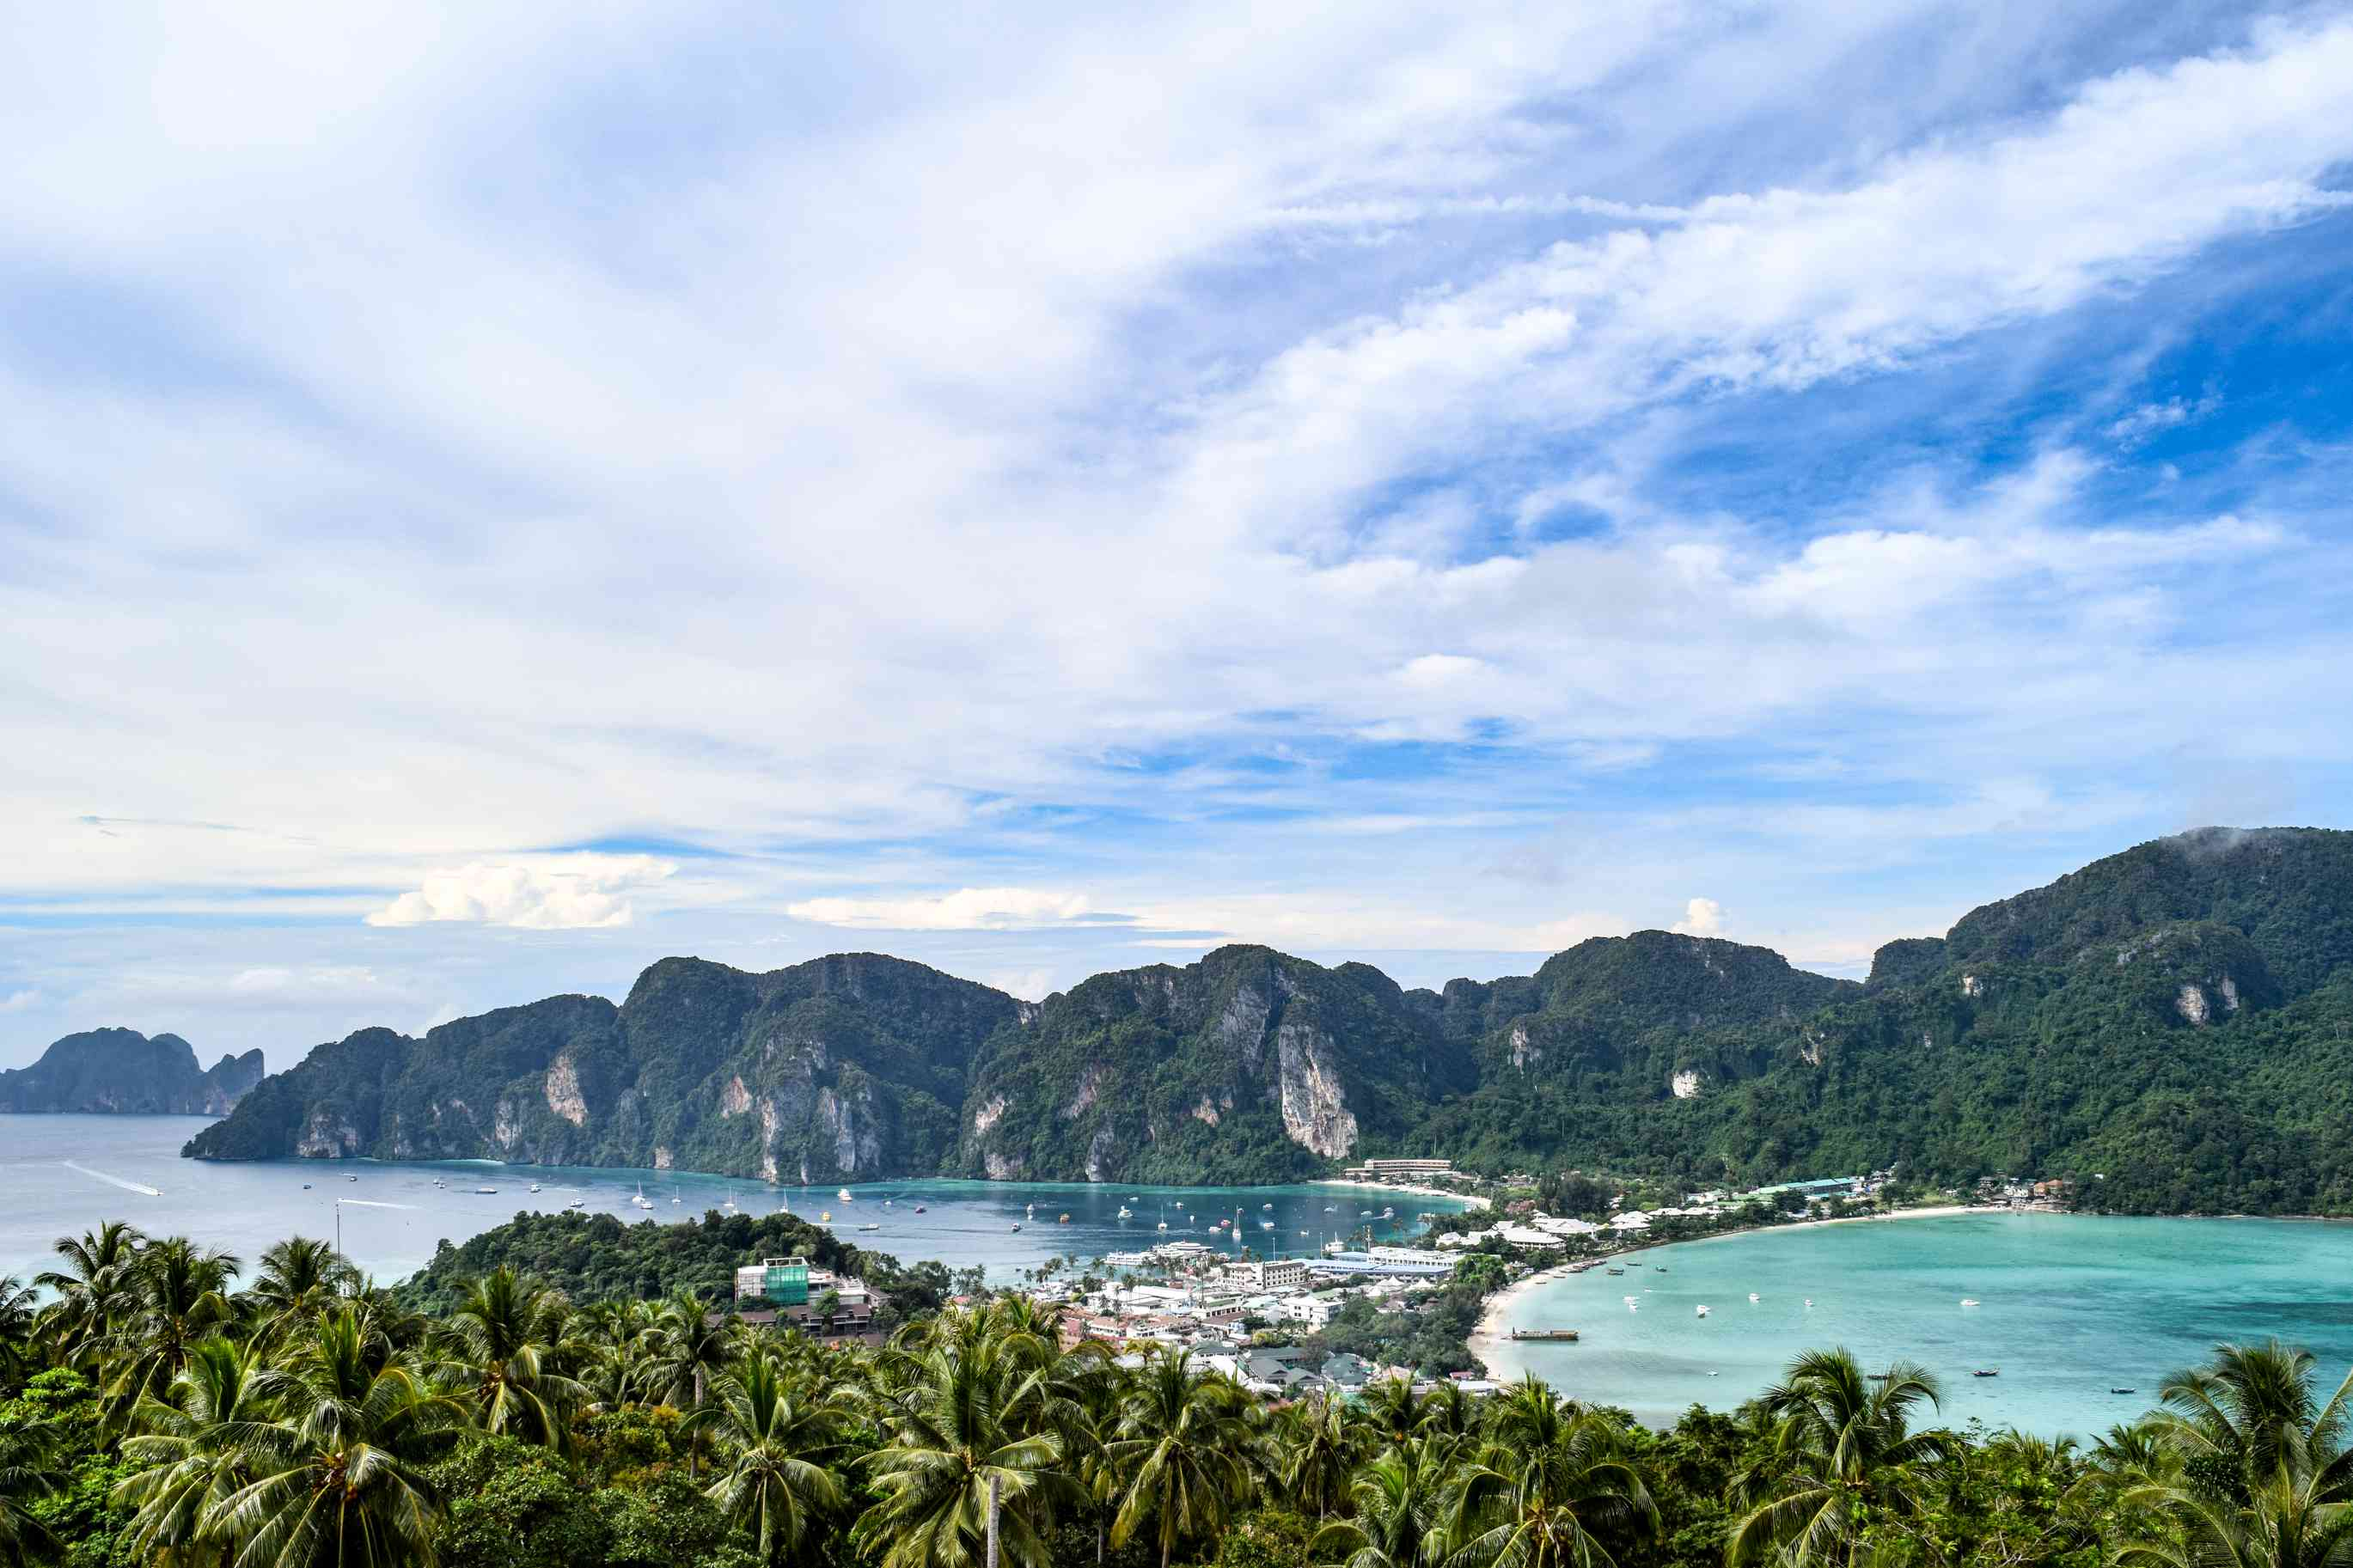 Wide view of Koh Phi Phi Island